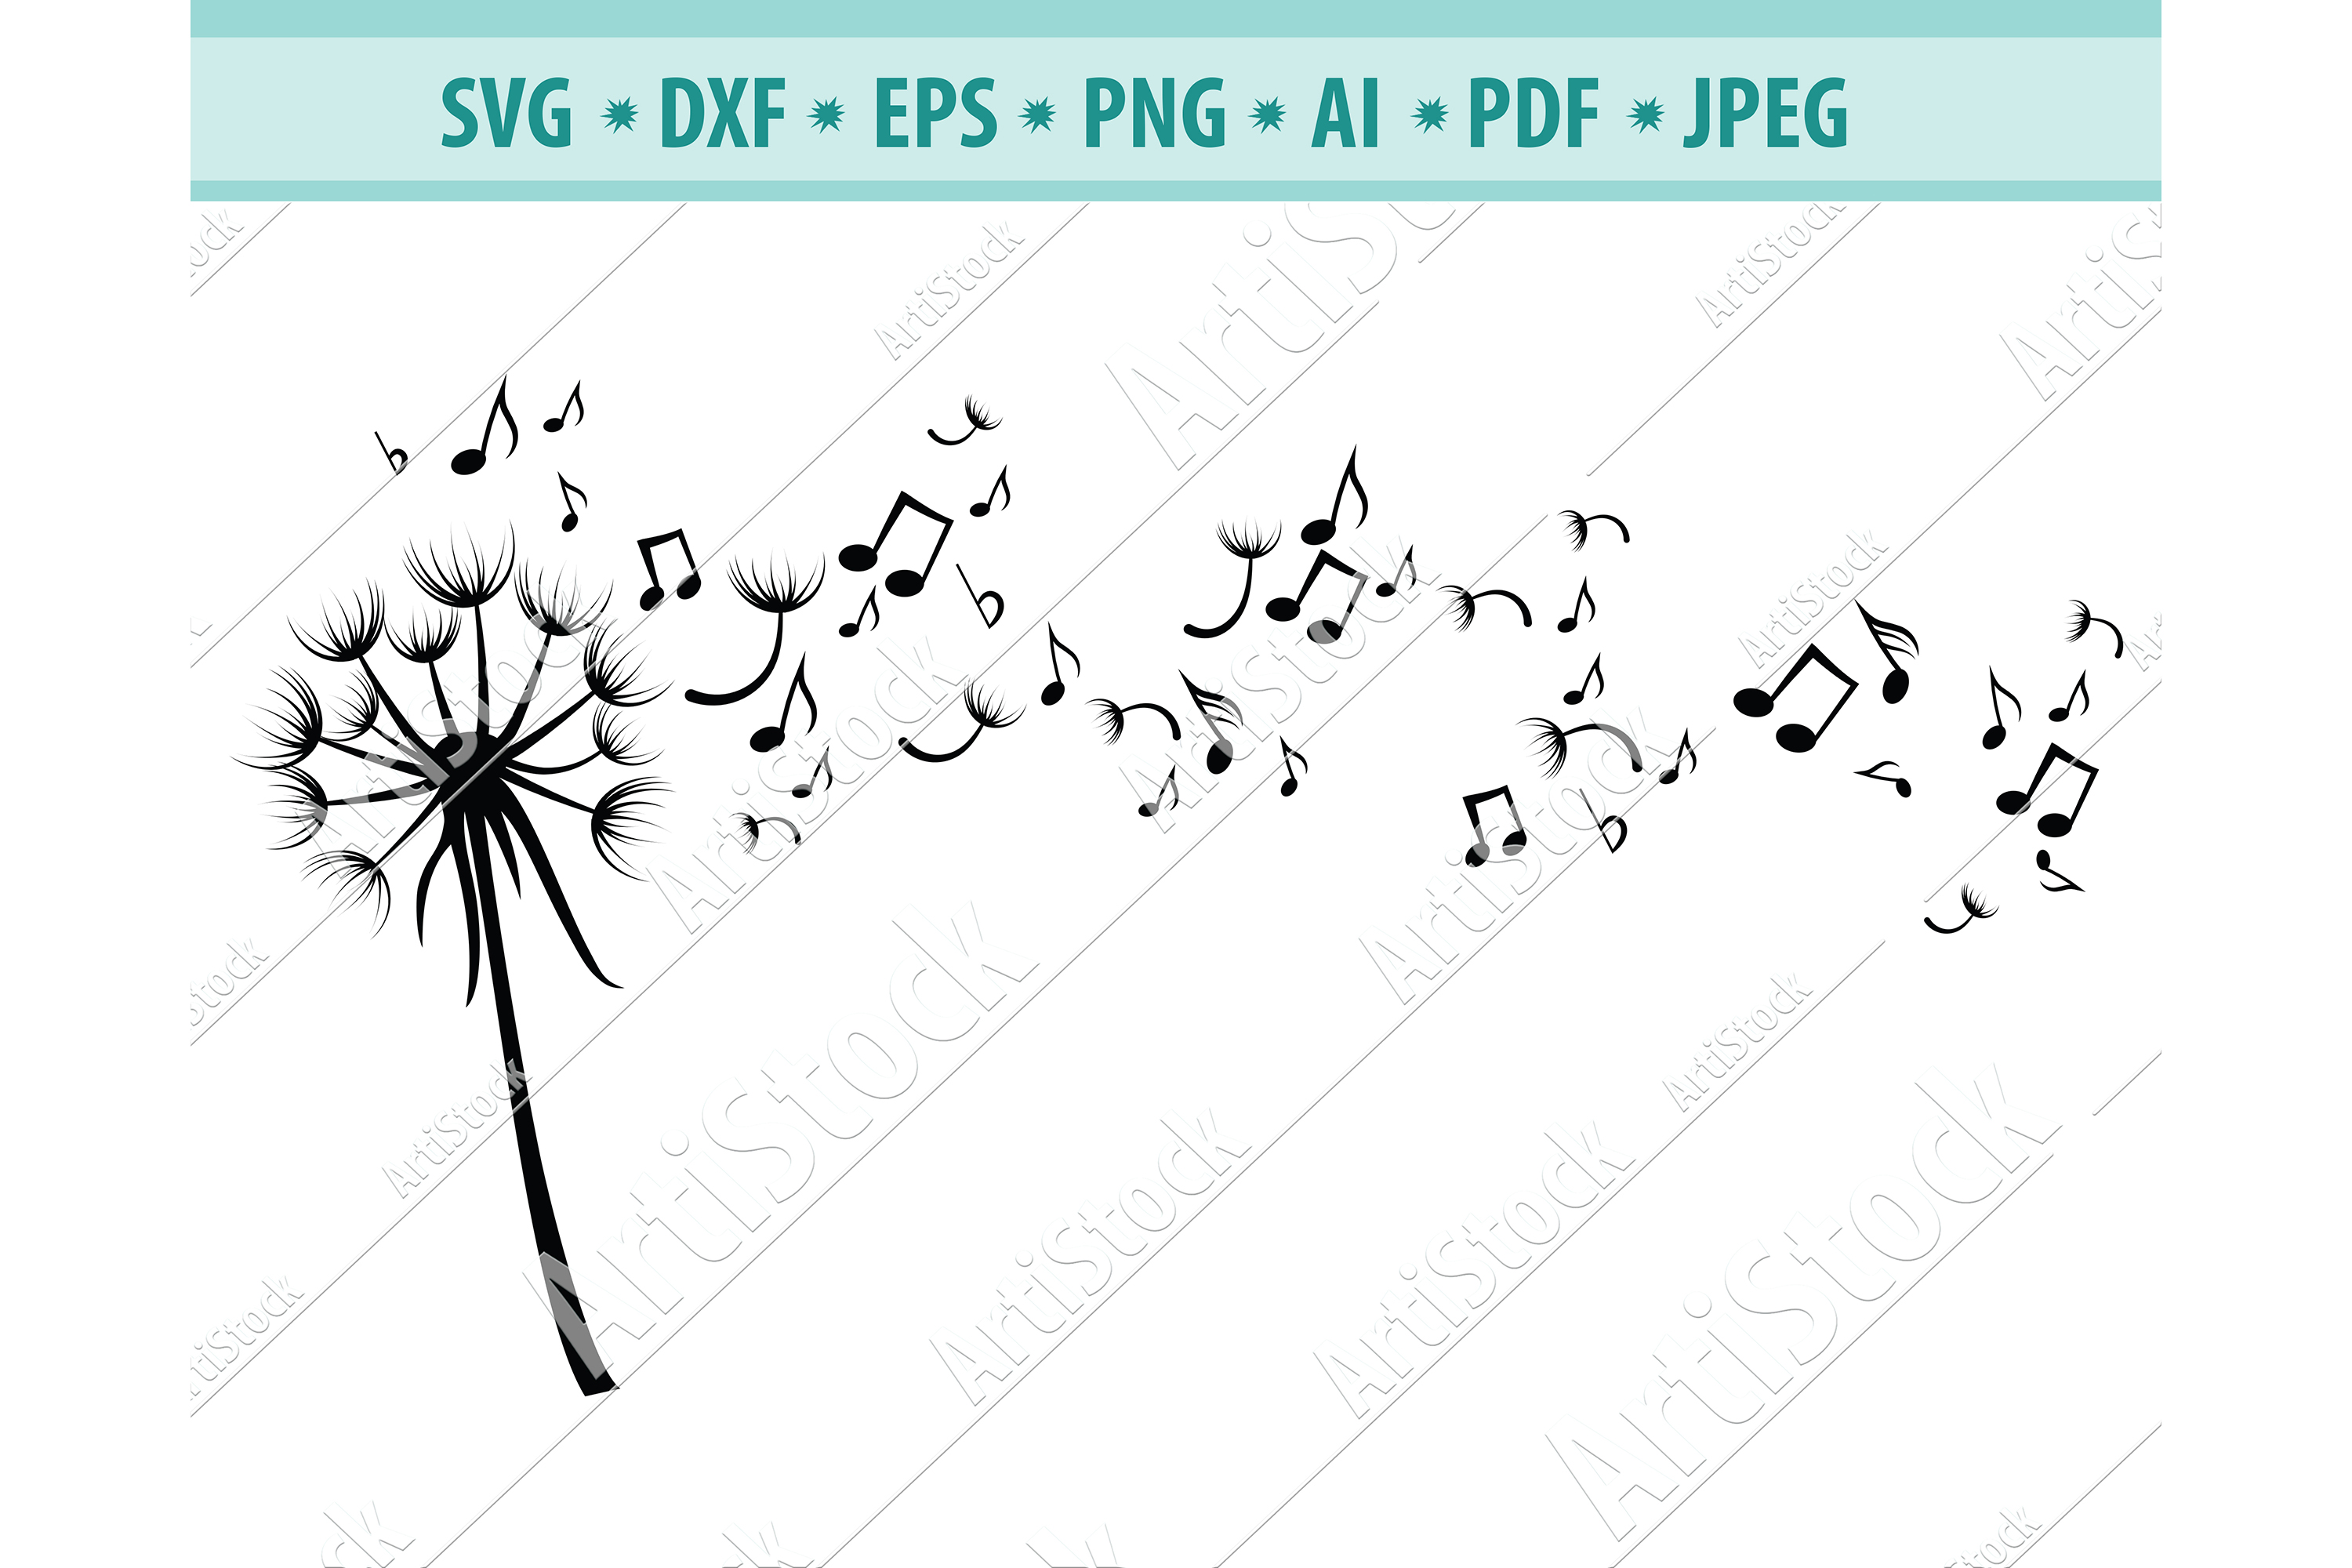 Dandelion with Notes SVG, Music svg, Notes Dxf, Png, Eps example image 1